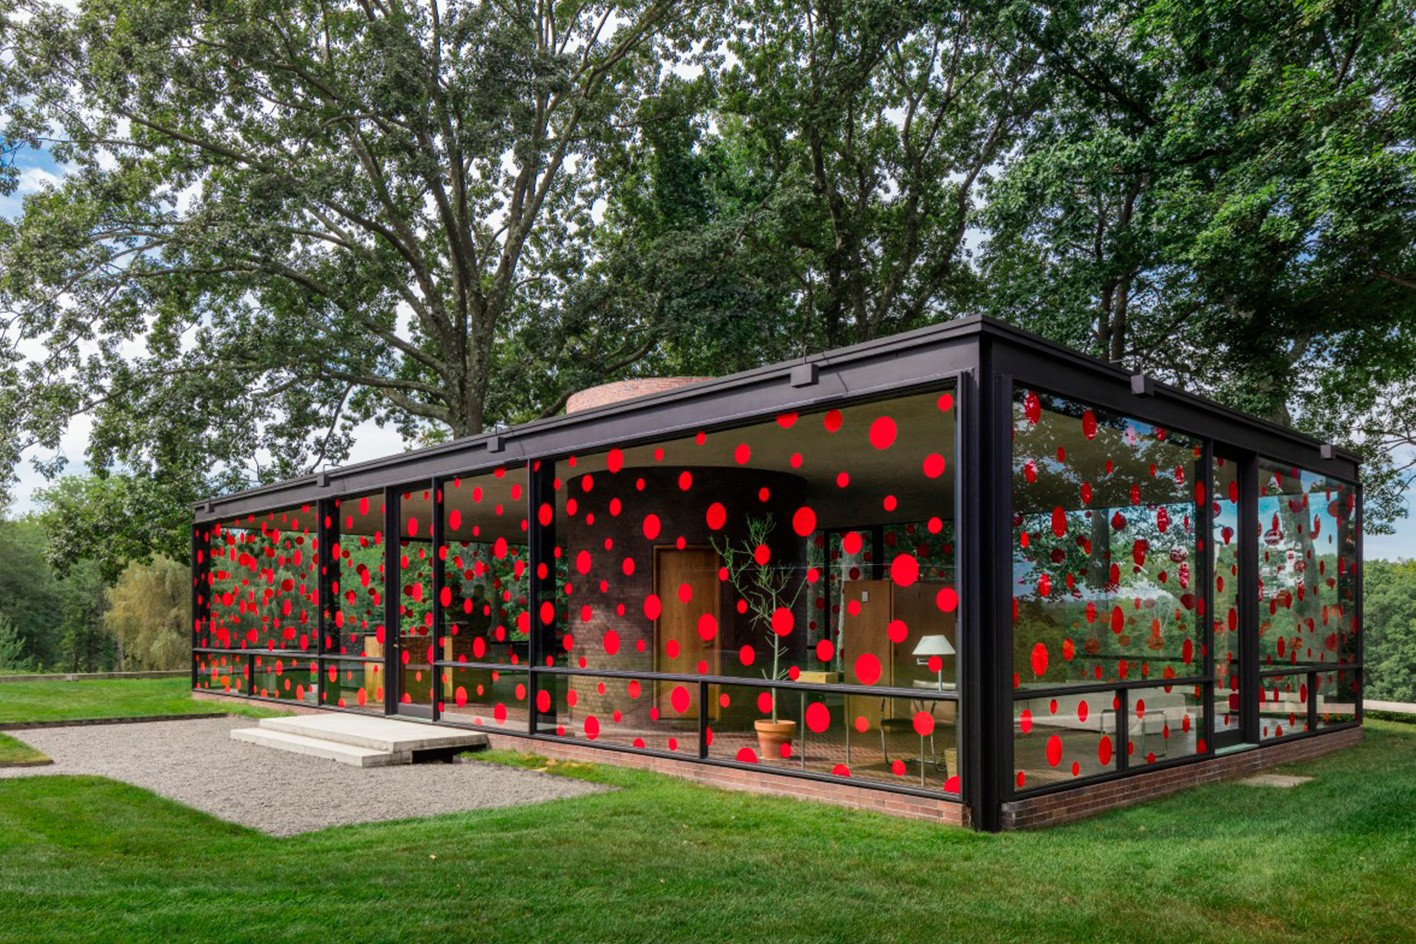 dots obsession installation by yayoi kusama at philip johnson 39 s glass house streetartnews. Black Bedroom Furniture Sets. Home Design Ideas